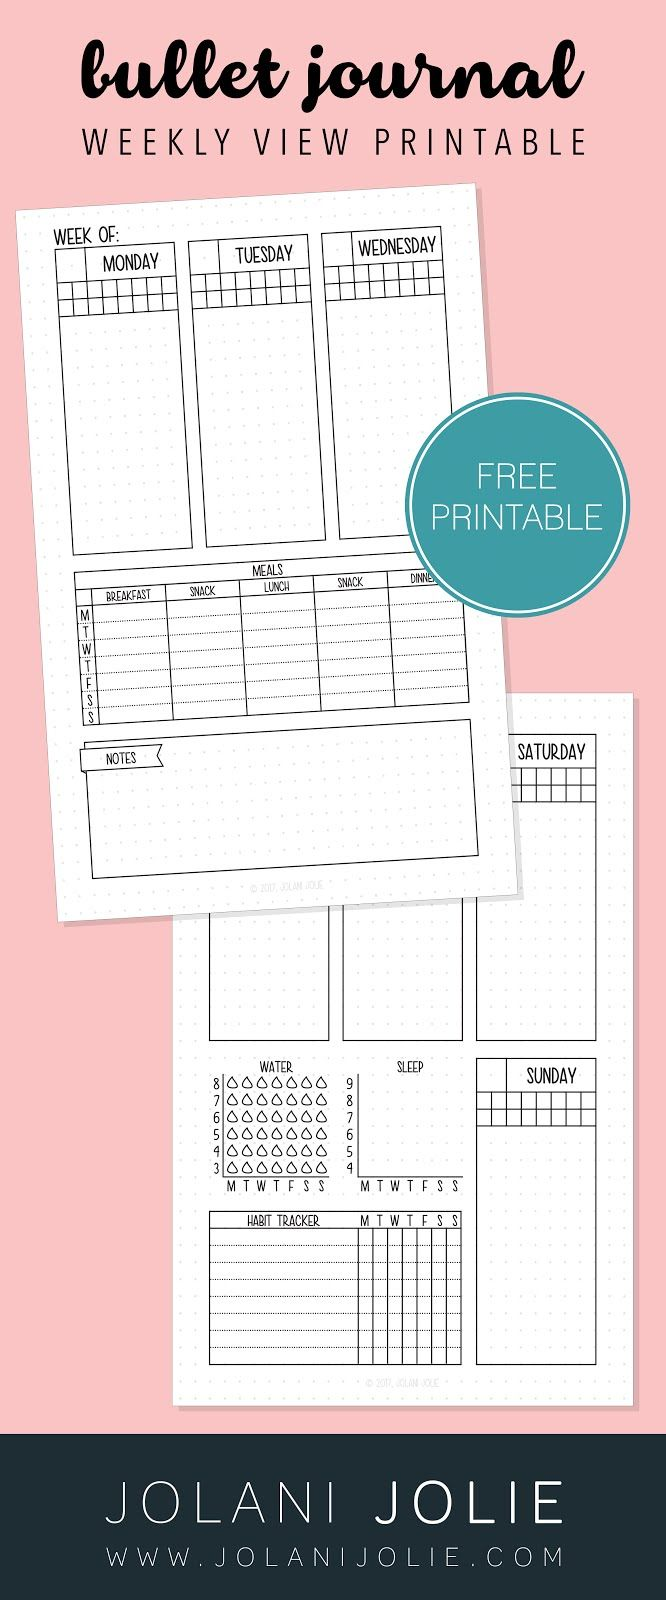 Free Printable: Weekly Bullet Journal Overview with Sleep, Water ...